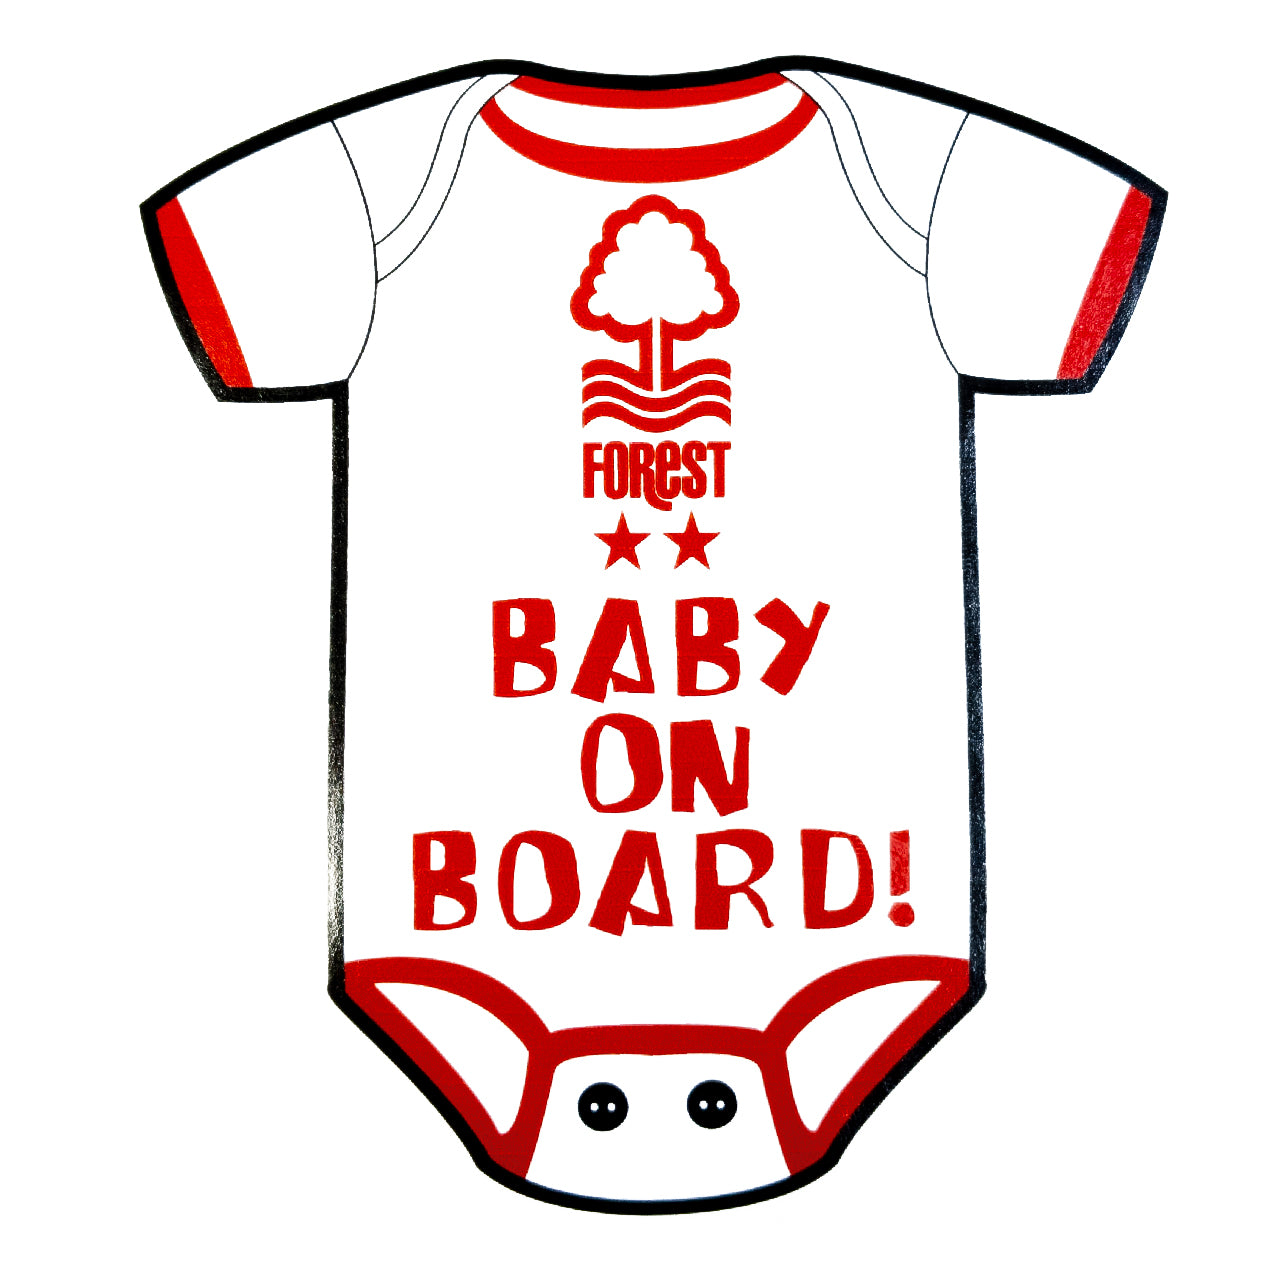 NFFC Baby on Board Car Sticker